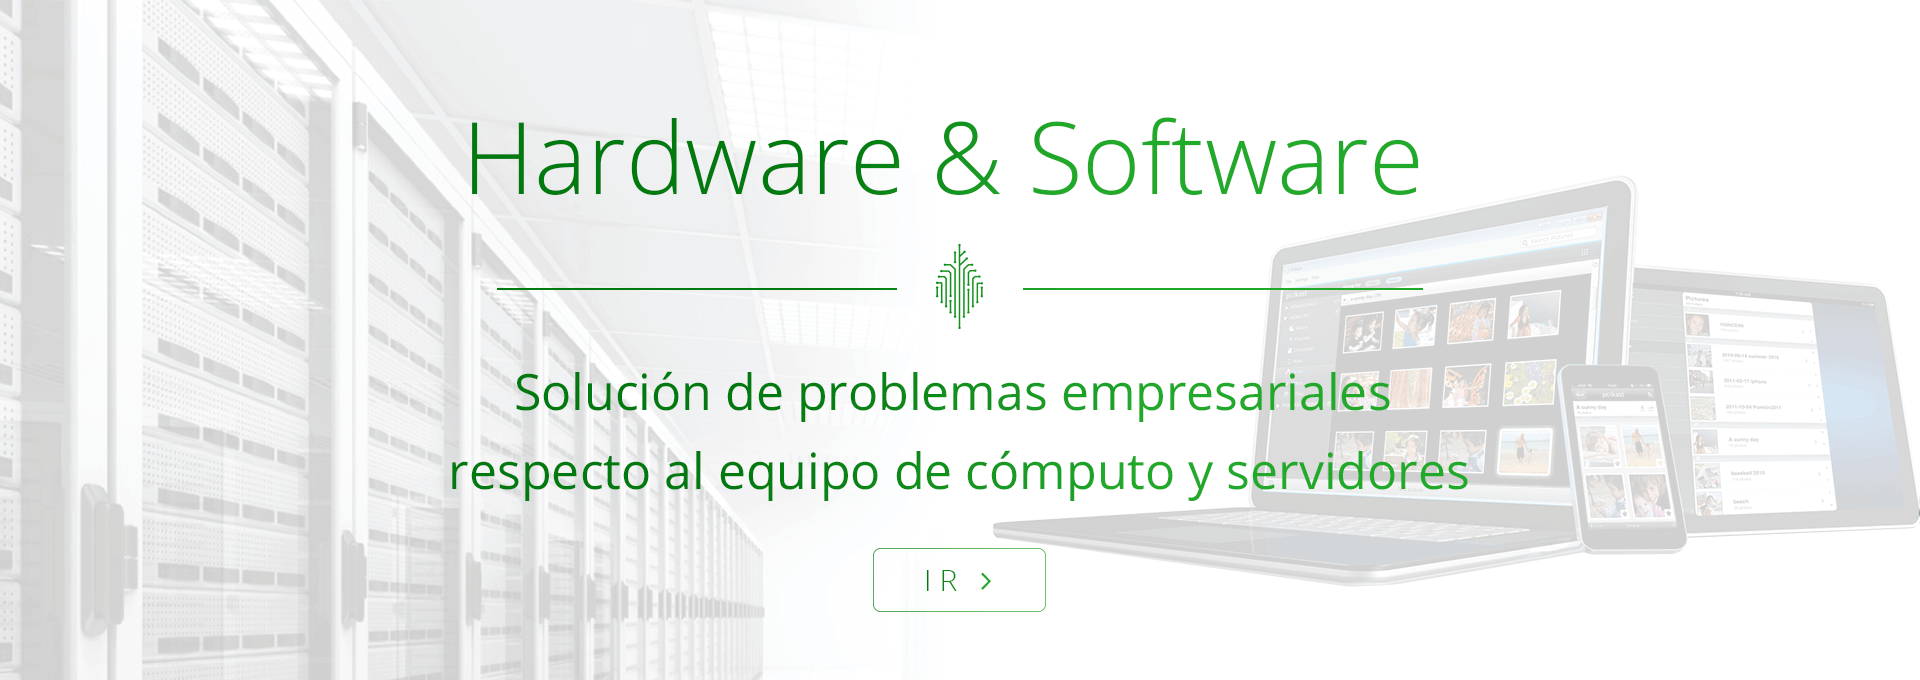 Hardware & Software | Grupo Ecológico MAC